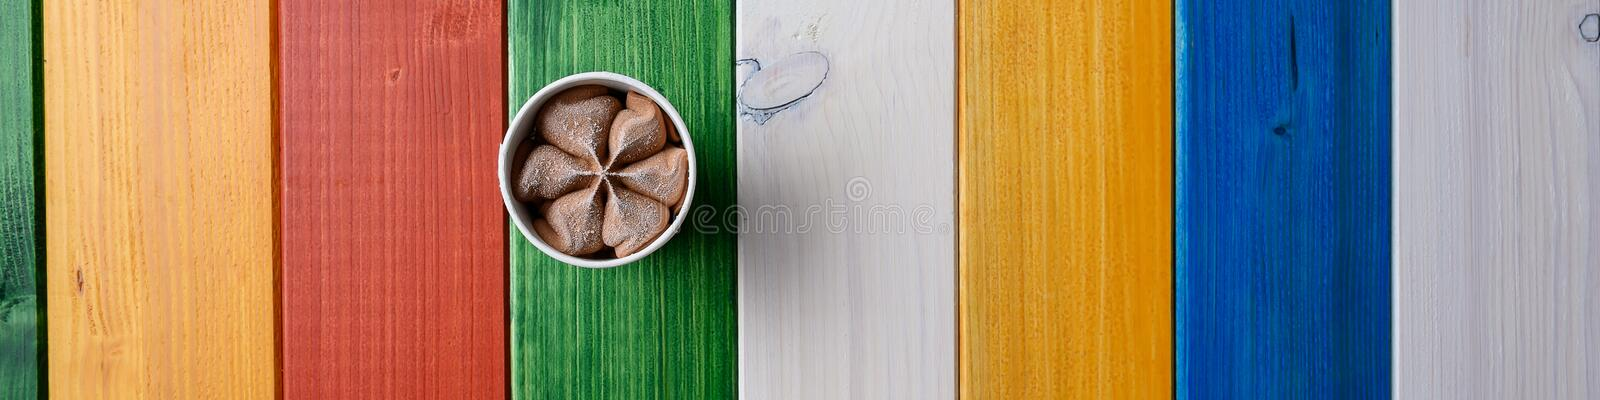 Wide view image of chocolate ice cream in paper cup royalty free stock image